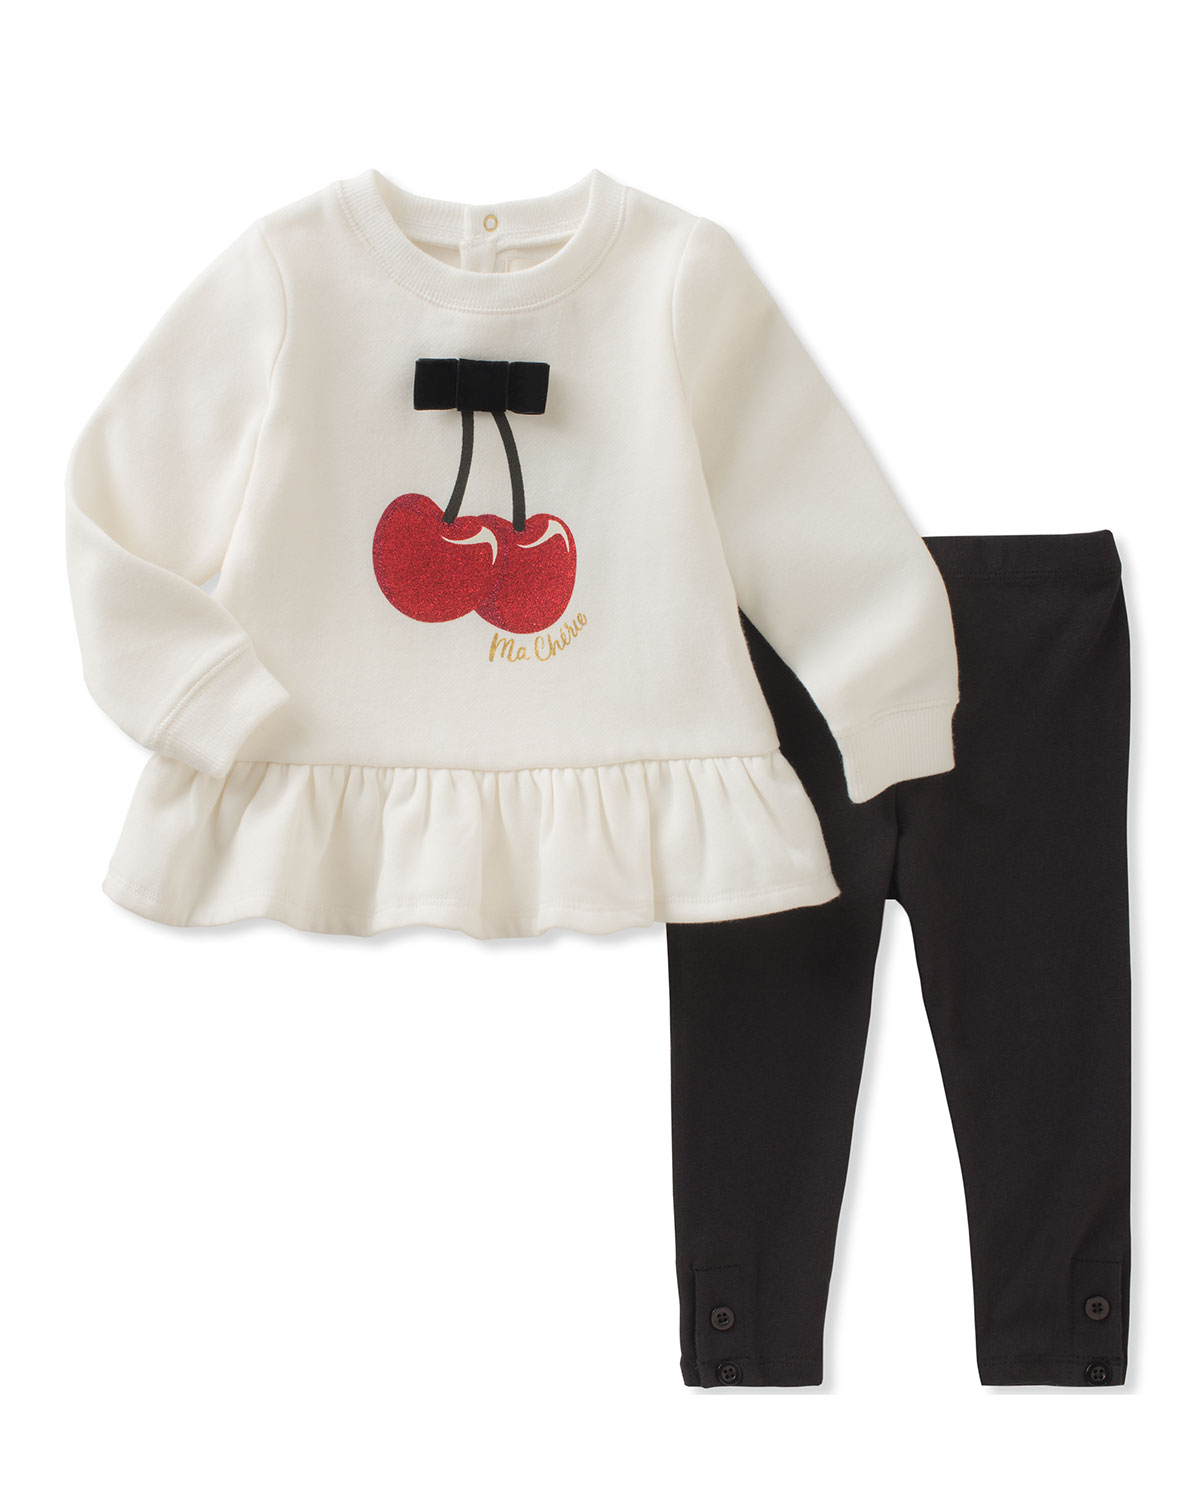 787d4a98f kate spade new york cherries sweatshirt w/ leggings, size 12-24 months